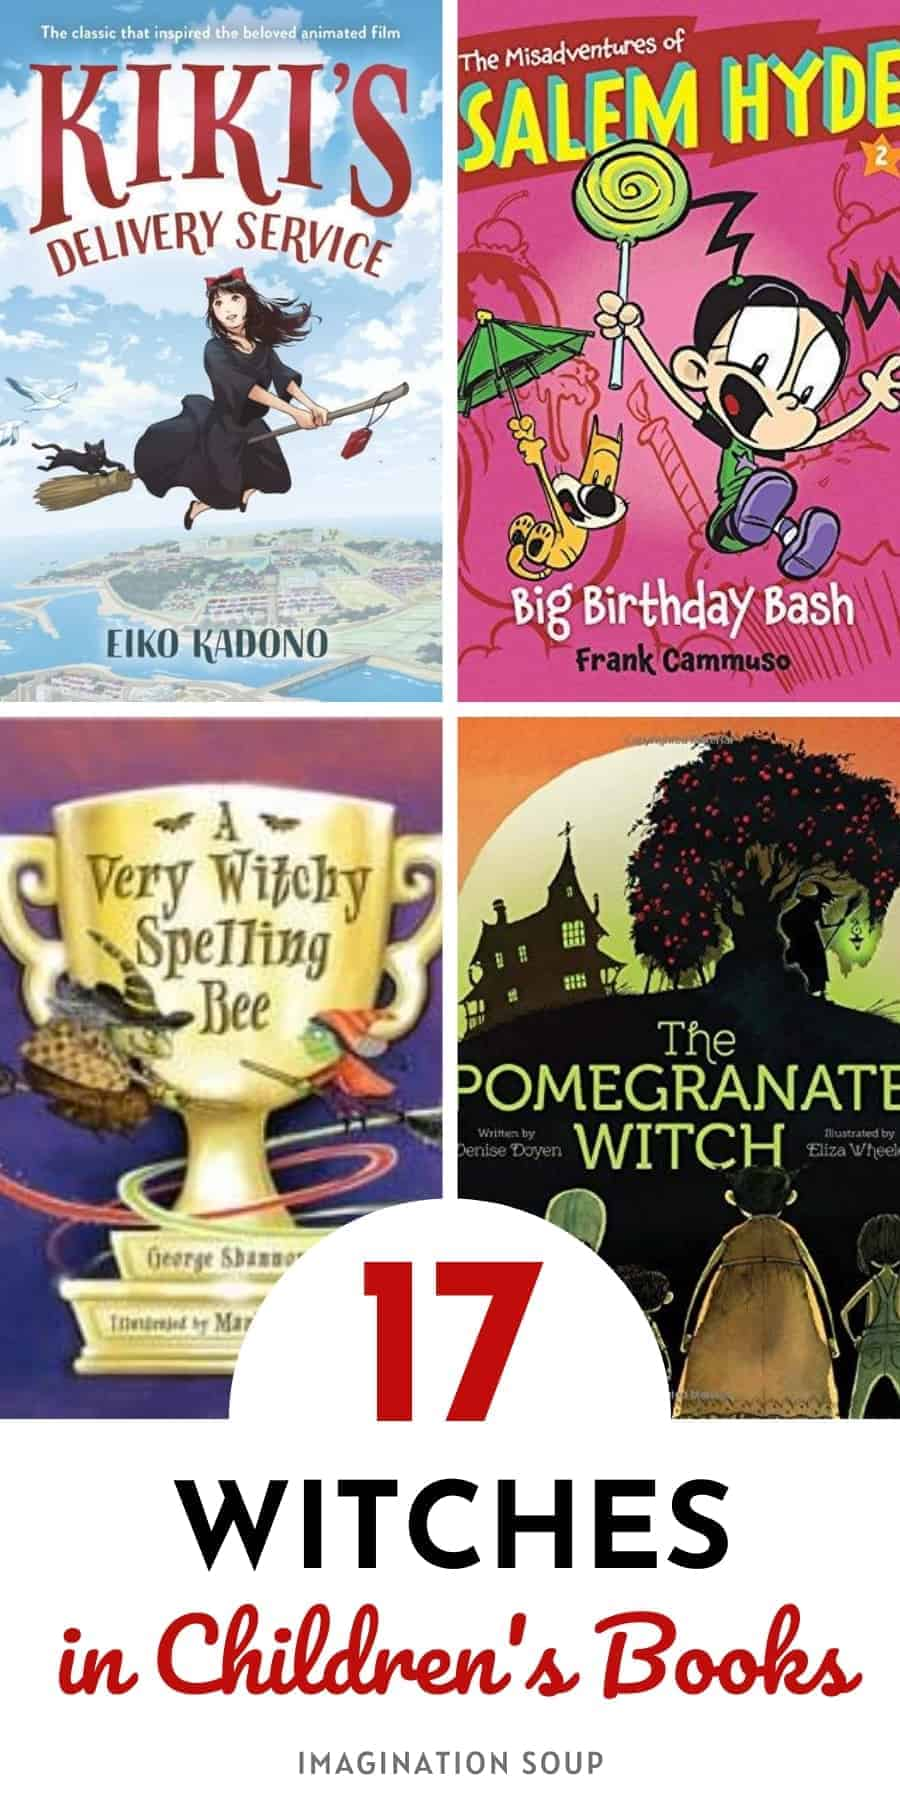 picture books and chapter books about witches